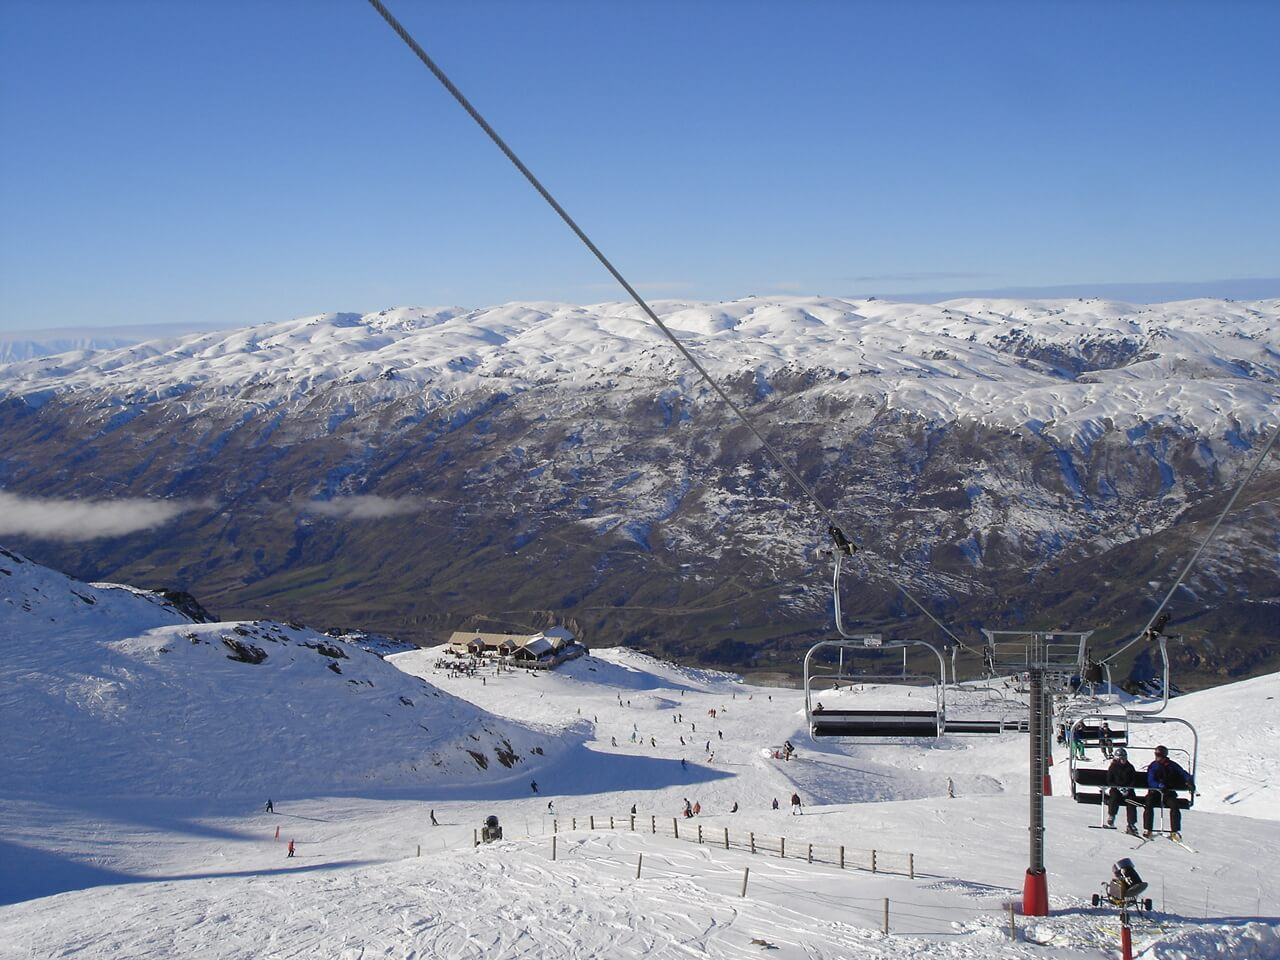 Cardrona Ski field - great for families and all levels of skier and rider